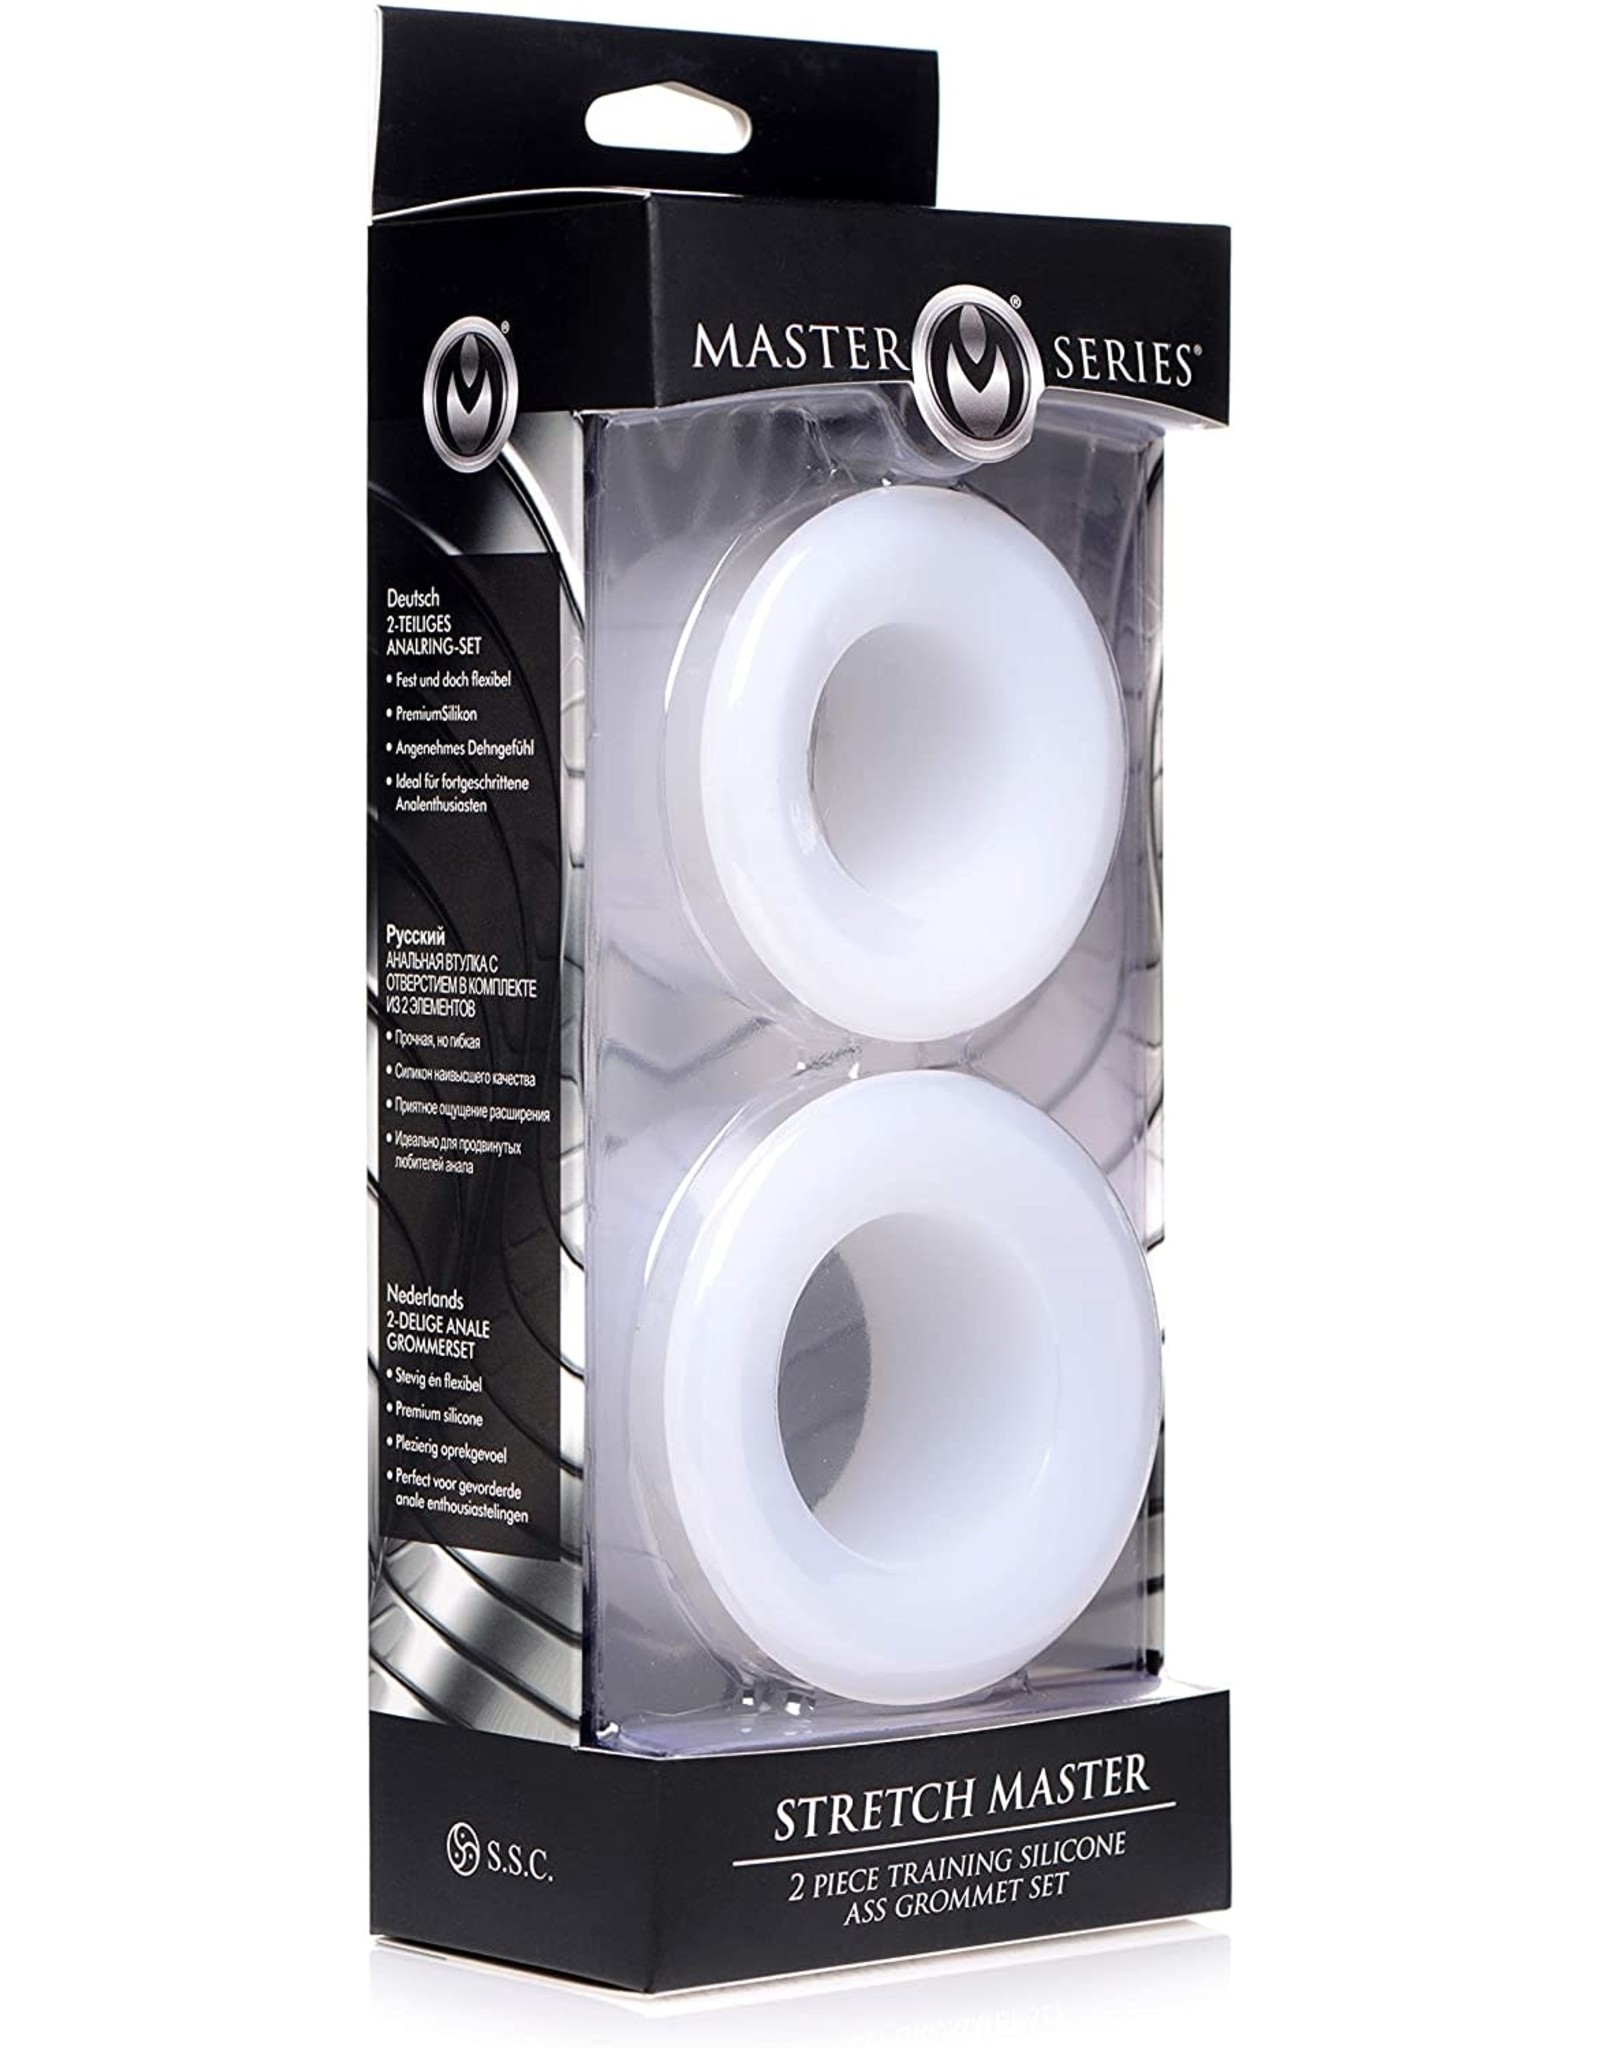 Master Series Master Series Stretch Master Training Silicone Ass Grommet Set